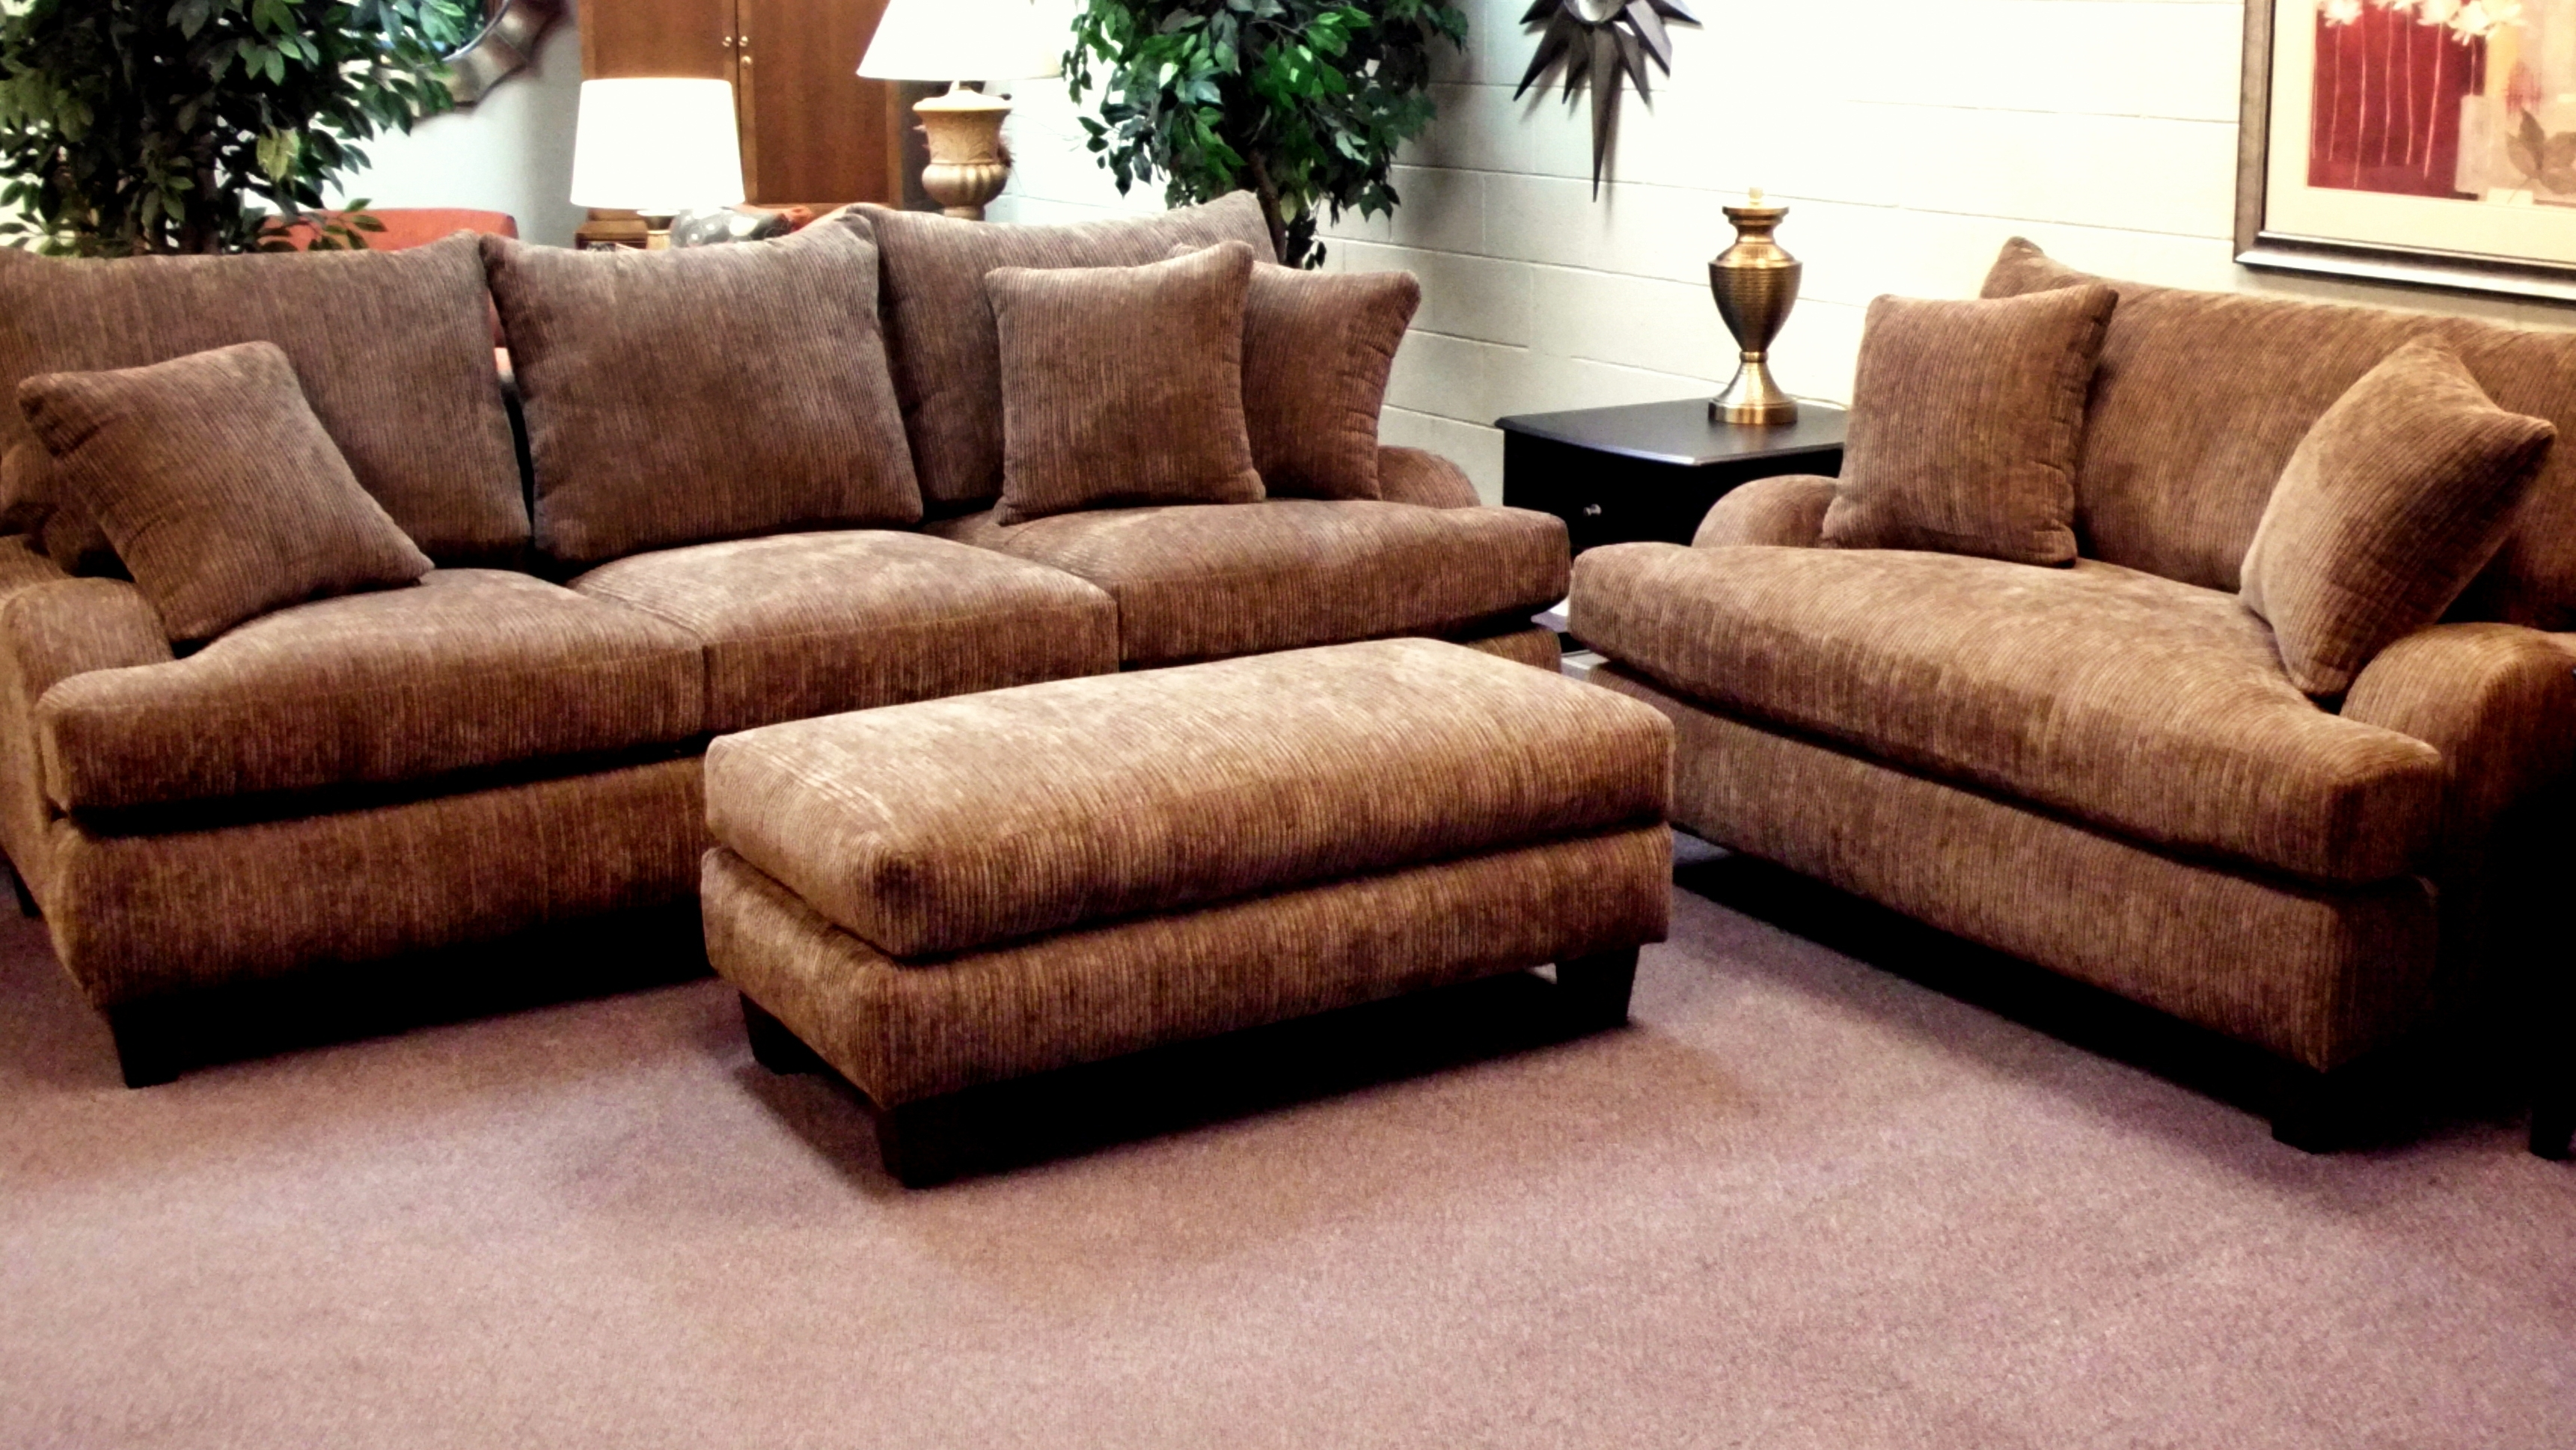 Lovesac Intended For Fashionable Oversized Sofa Chairs (View 6 of 20)